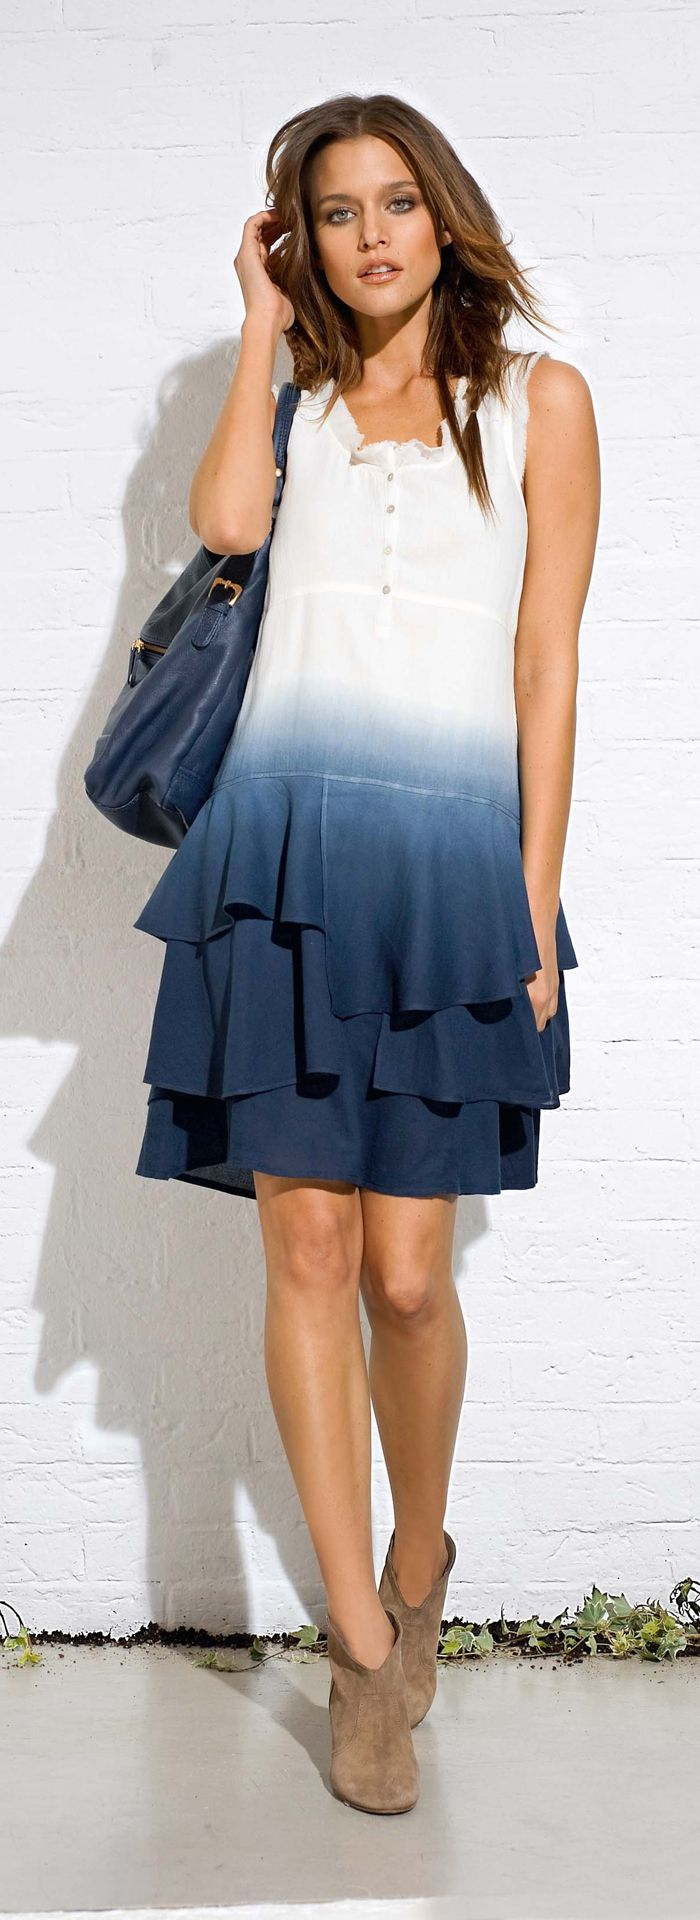 "Ombre dyed dress - CLICK TO READ ""Trends for Spring & Summer: Clothes for Real Women Over 40"" at http://boomerinas.com/2013/04/trends-for-spring-summer-clothes-for-real-women-over-40-2/"